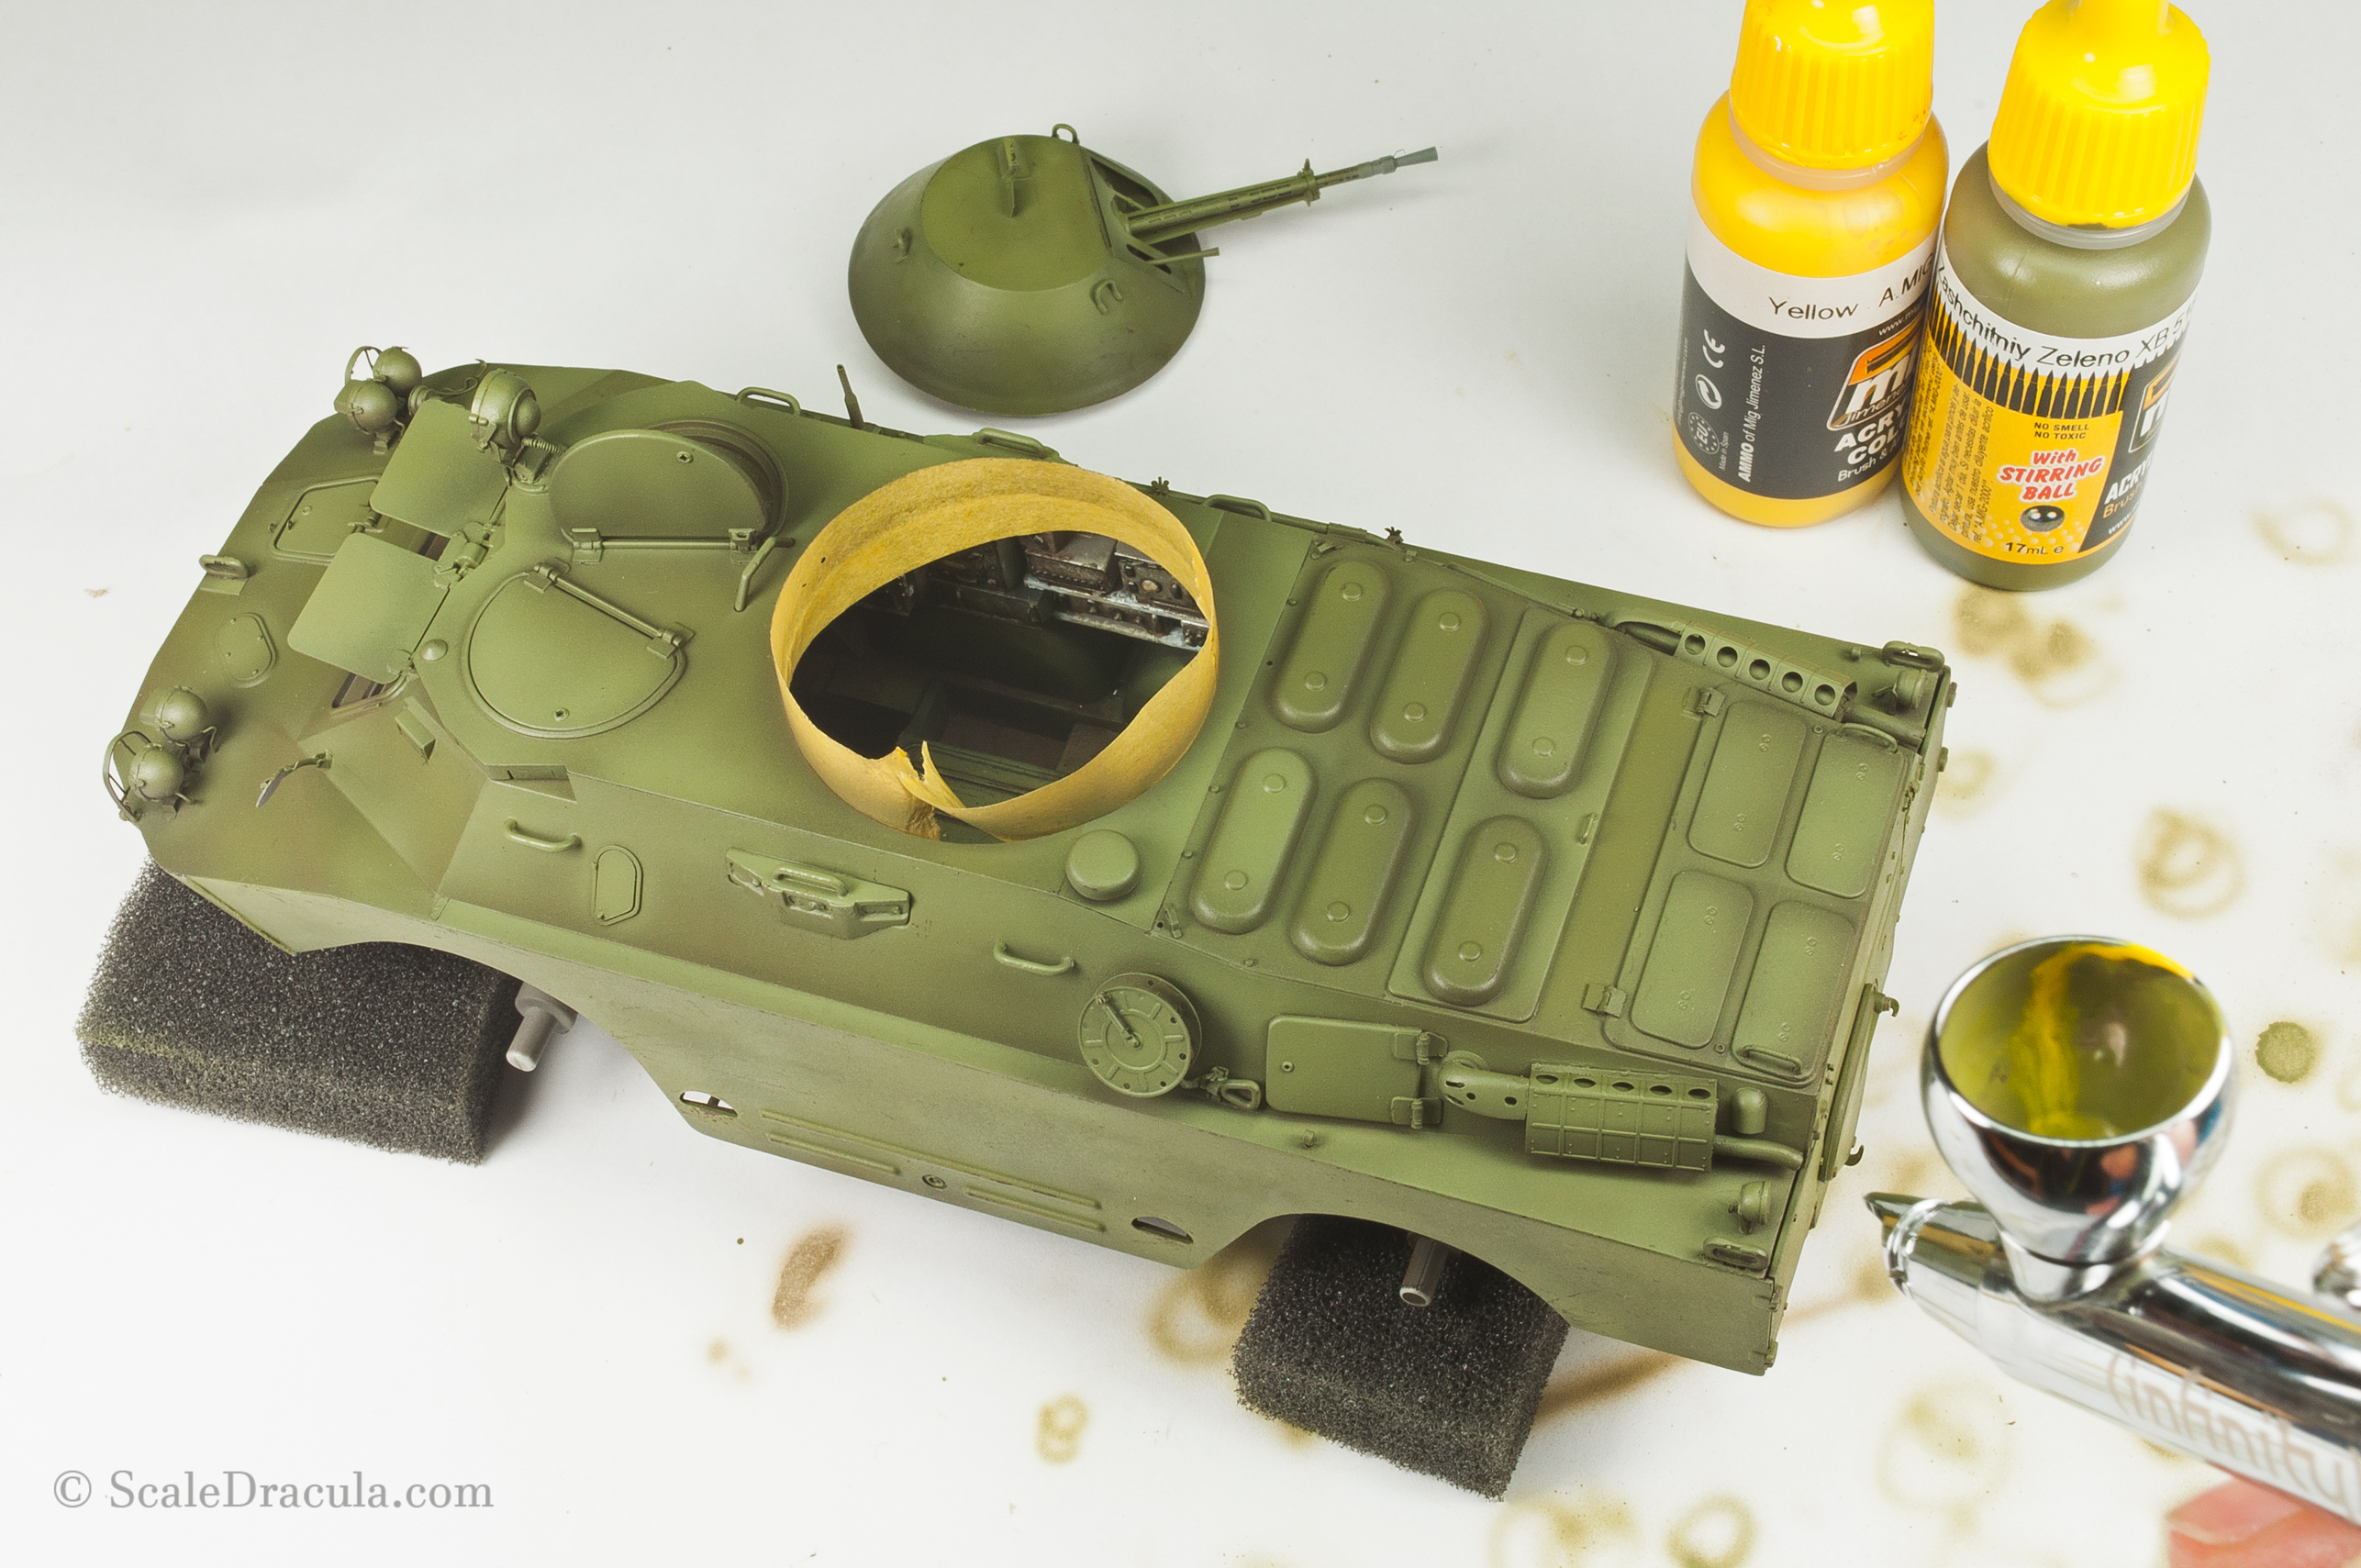 Finishing colour modulation, BRDM-2 by Trumpeter